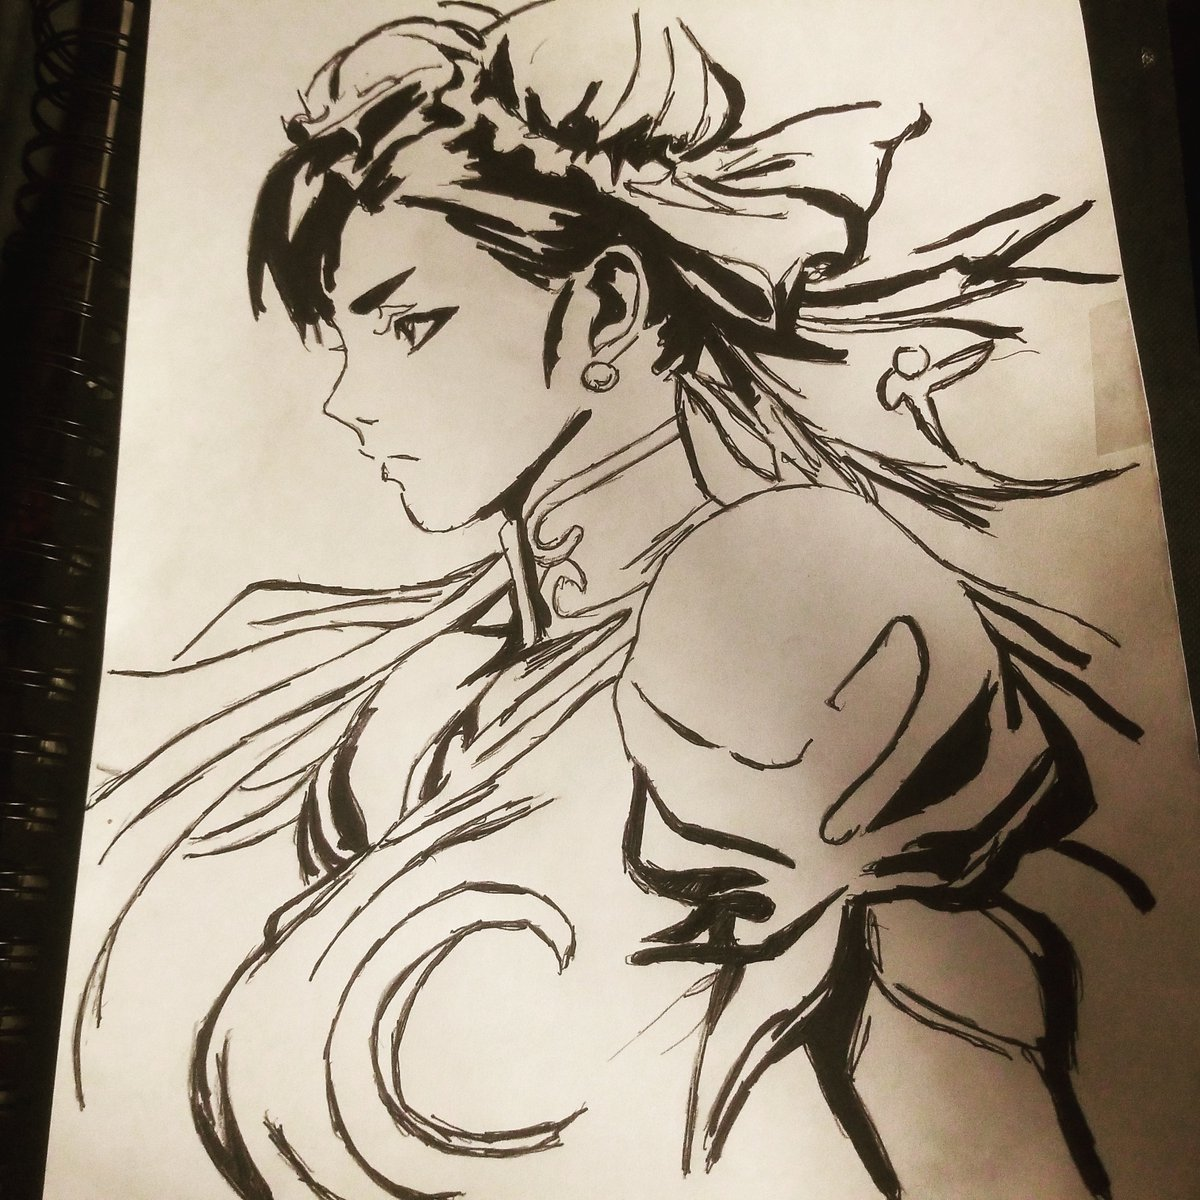 CHUN-LI #art #draw #drawings #StreetFighter #ChunLi #videogame #artists #artwork #gamingpic.twitter.com/KayWLIJ3BN